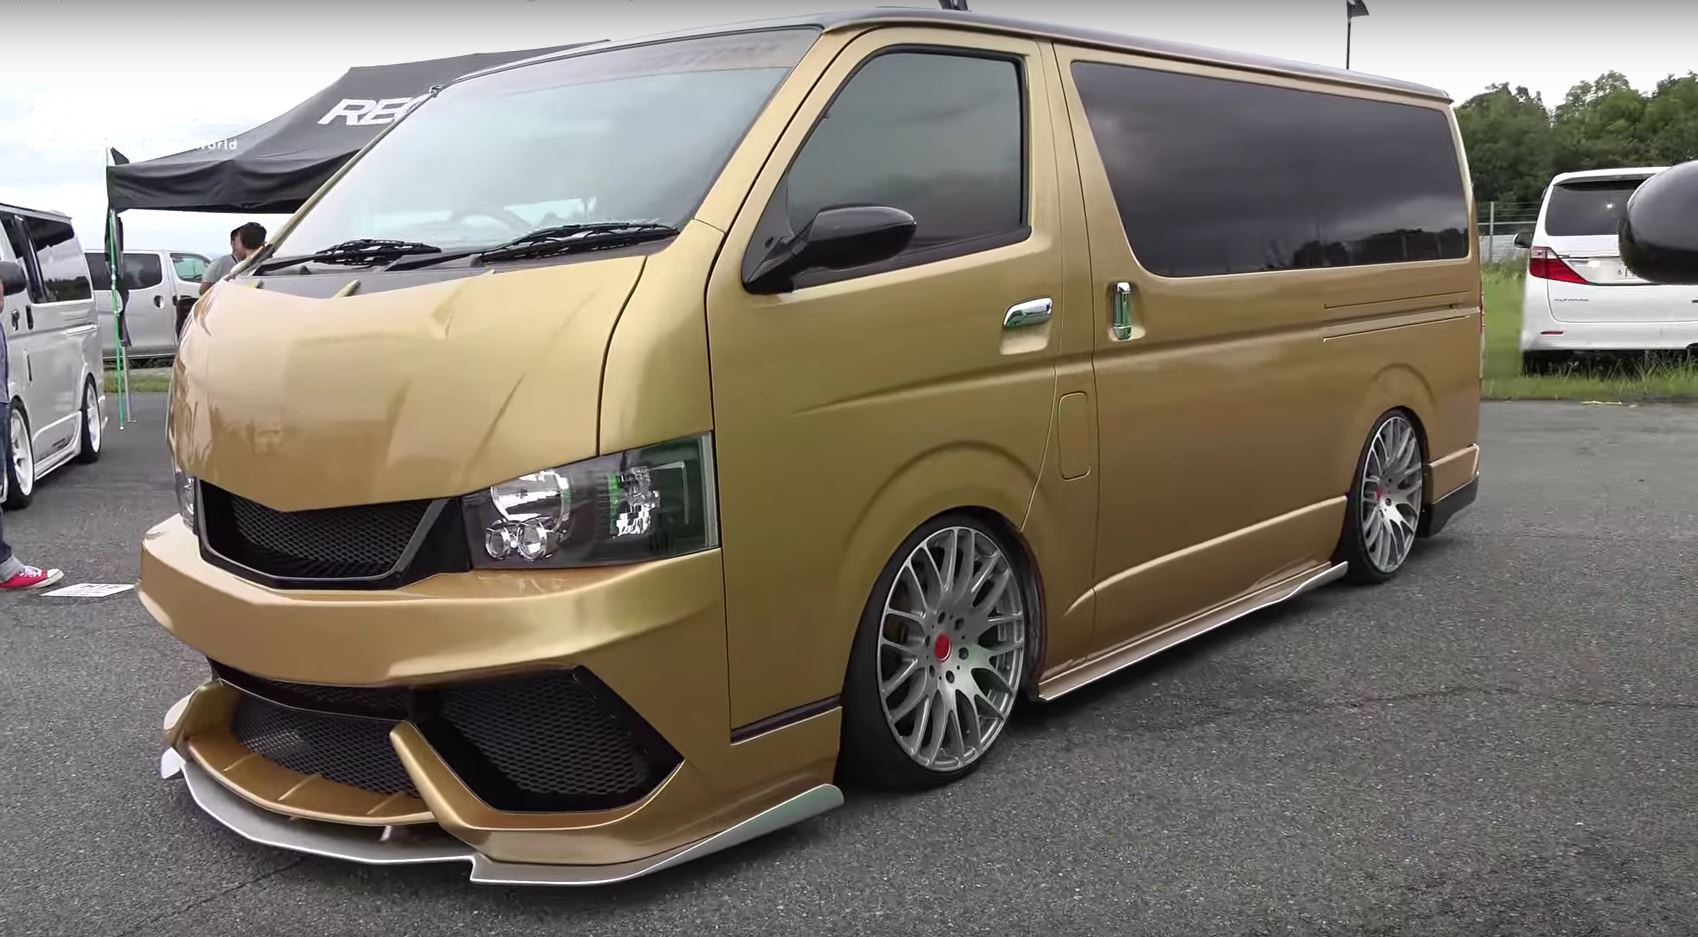 two toyota hiace vans get lamborghini bumpers and paint